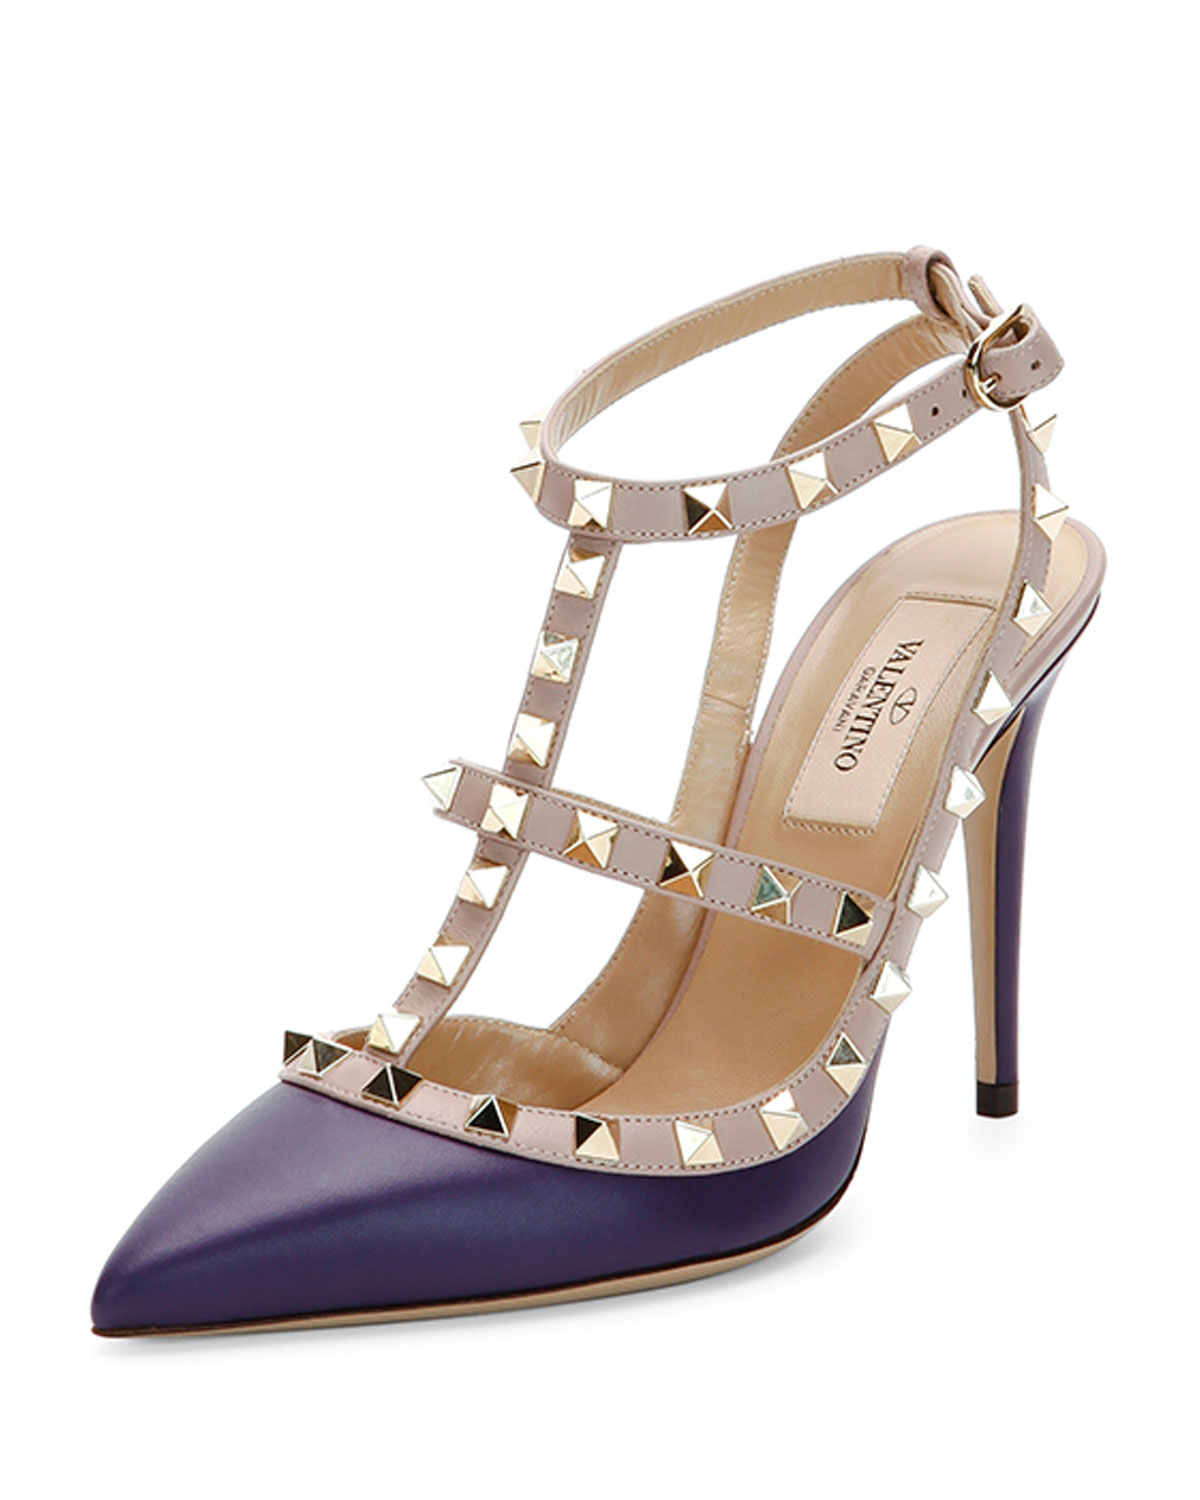 bcad1b876f9 Valentino Blue Rockstud Two-Tone Leather Pump